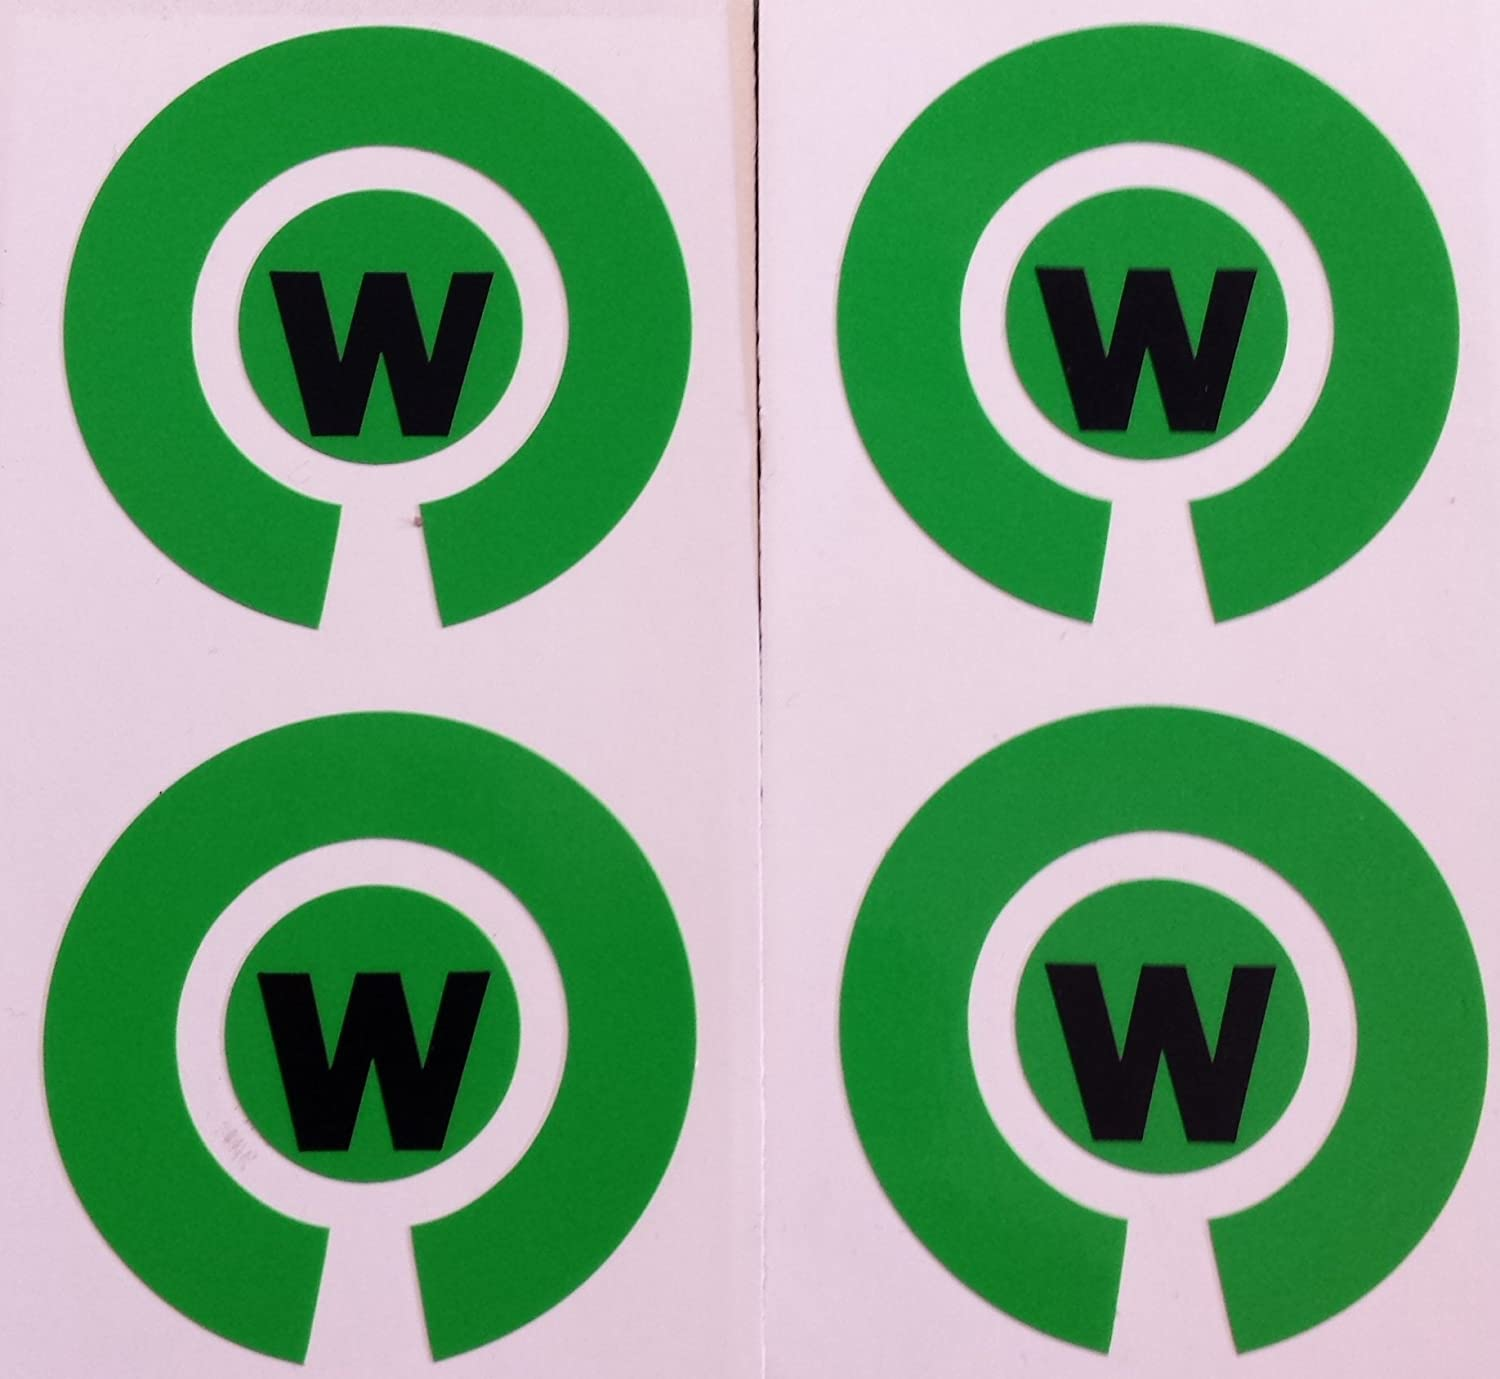 Crown Green Lawn Indoor Bowls Adhesive Lettered Coloured Marker Labels Set of 4 (Green, W)